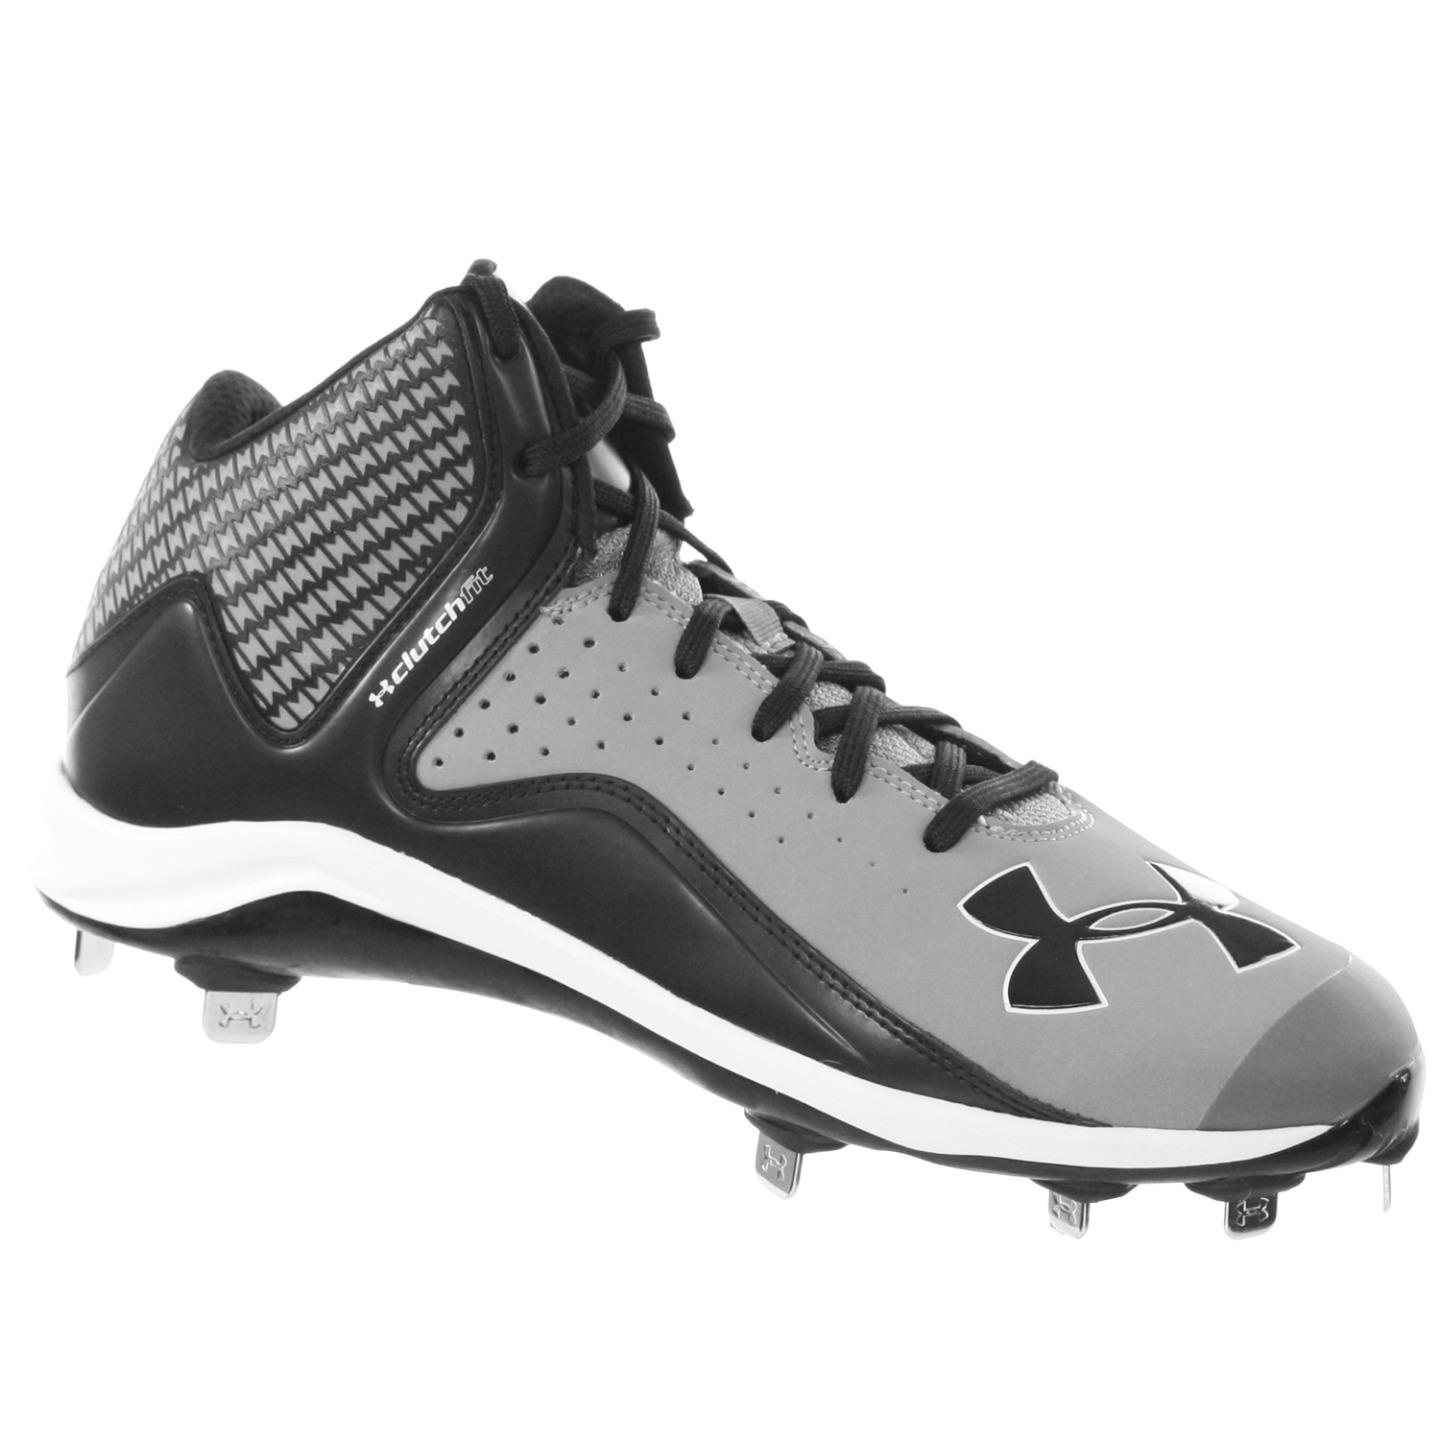 UNDER ARMOUR YARD MIST ST MEN'S METAL BASEBALL CLEATS GREY BLACK 11.5